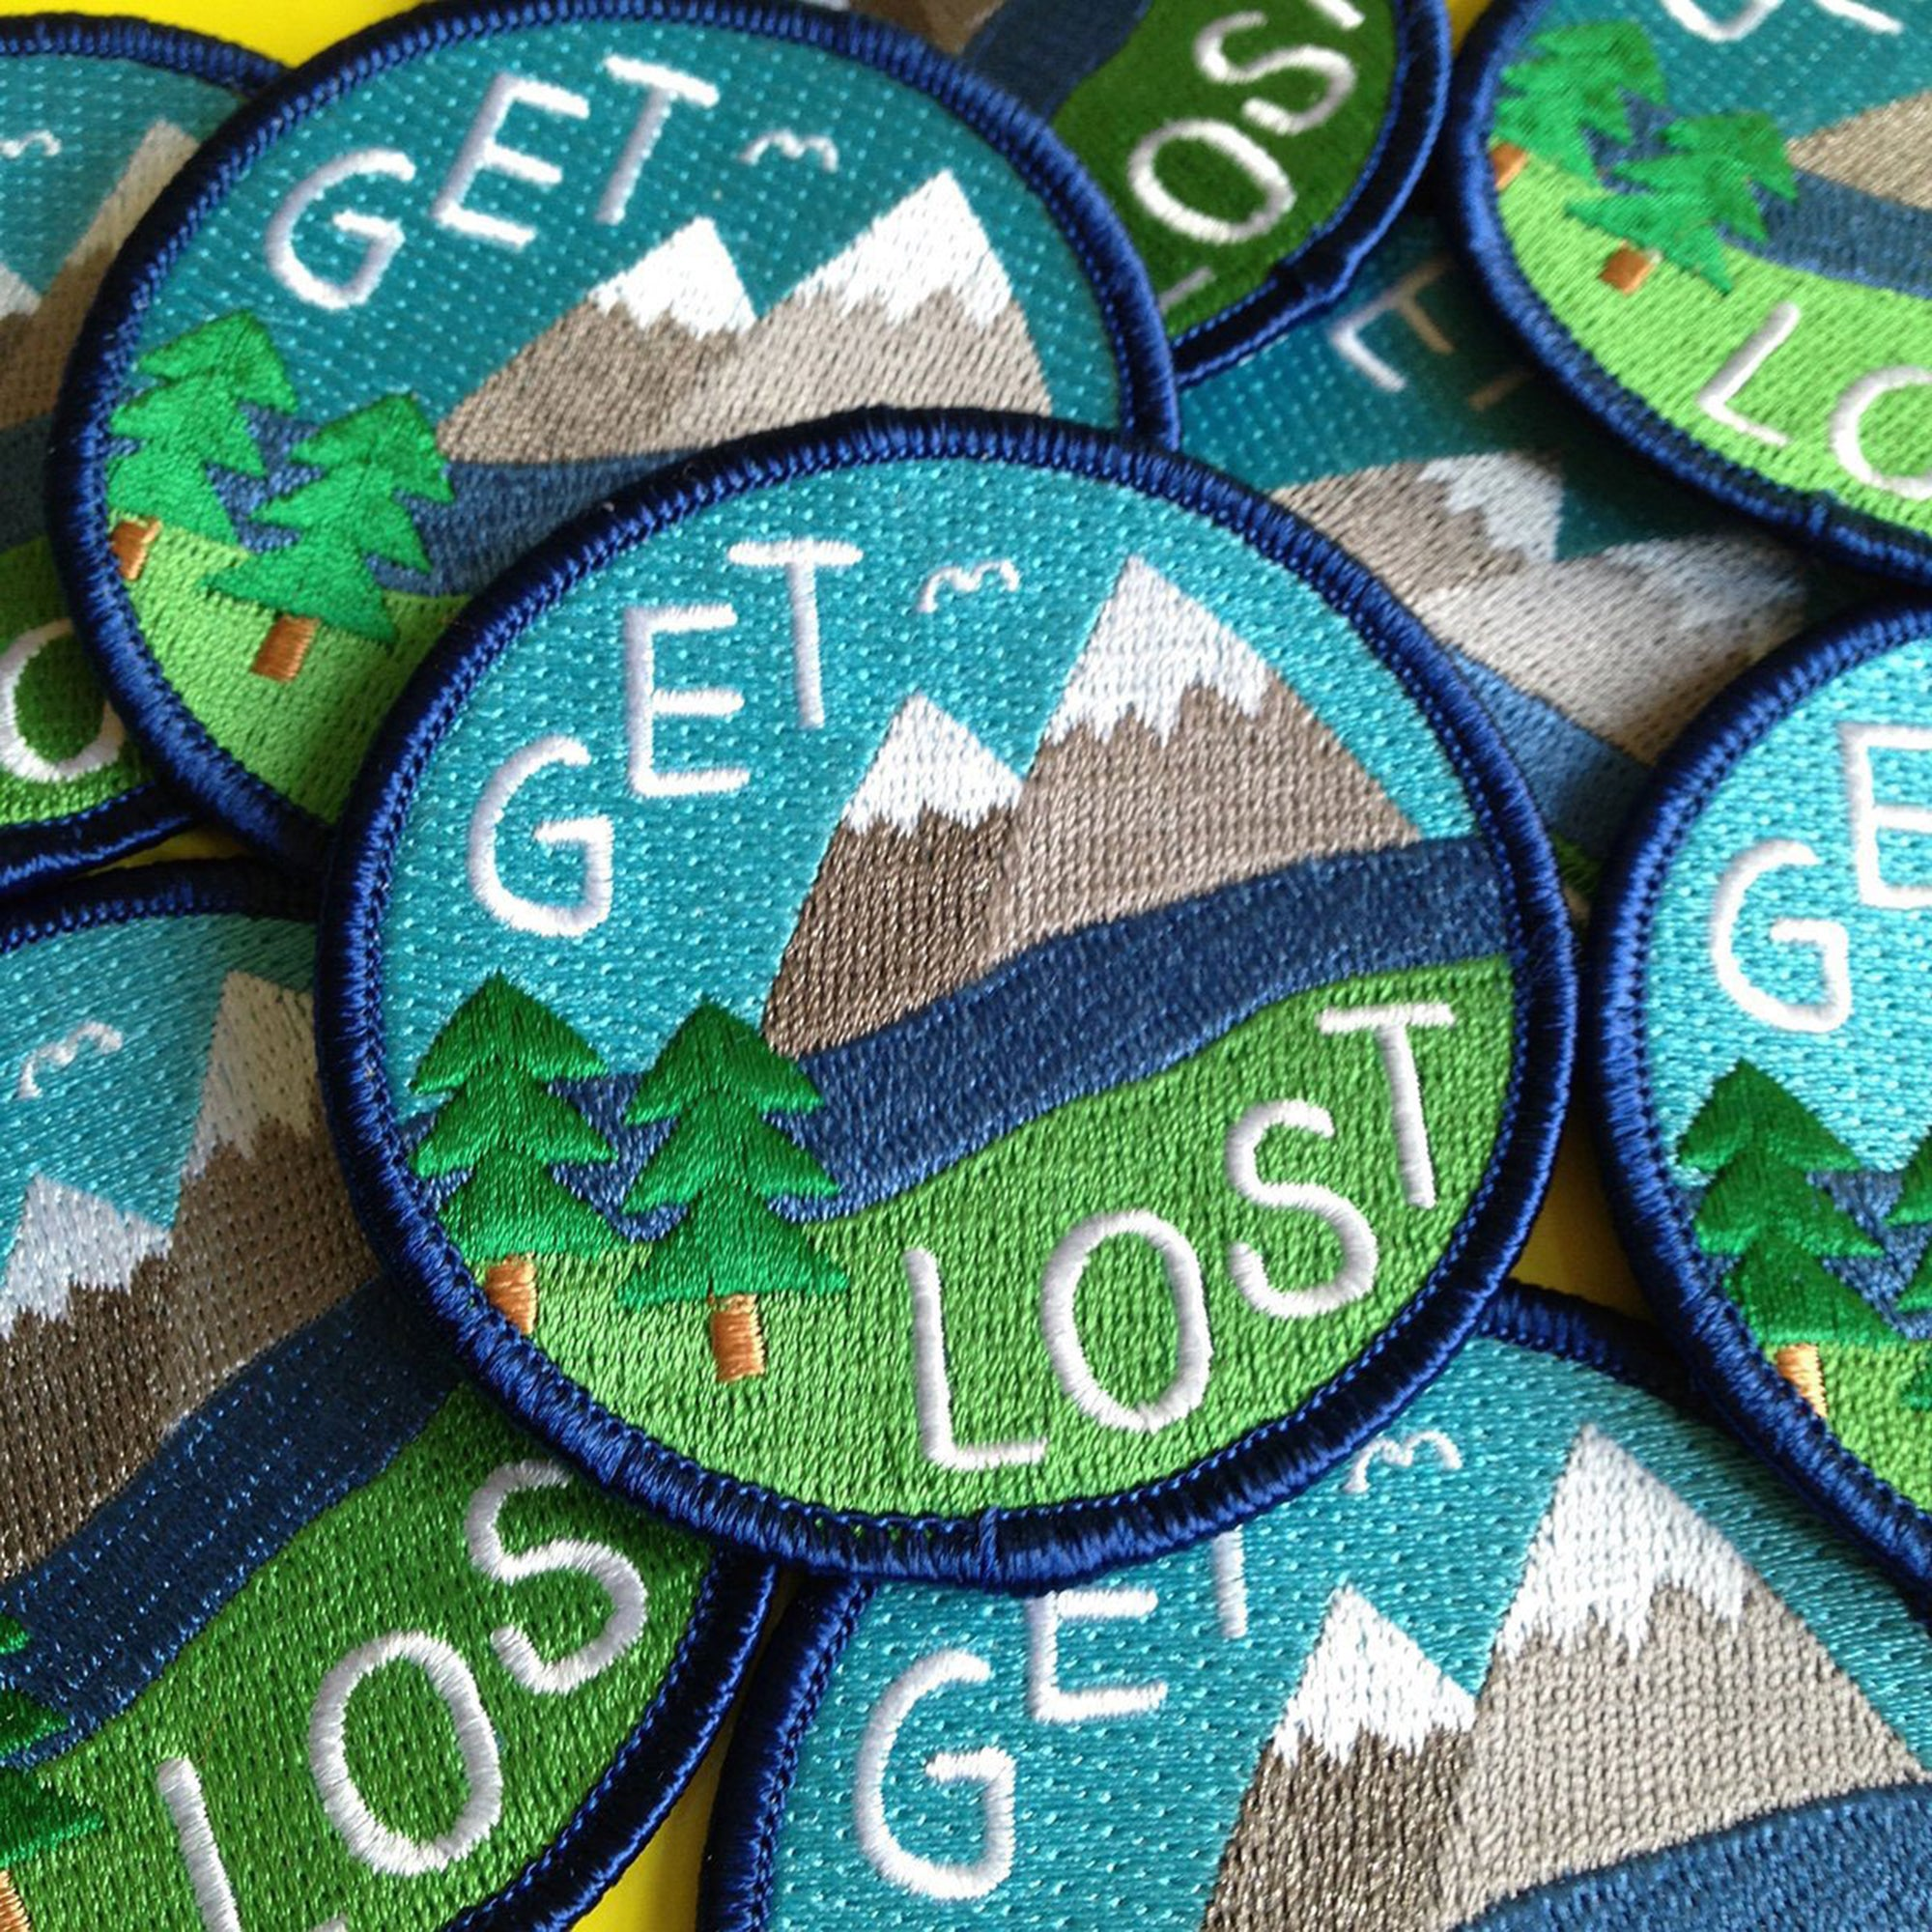 Get lost patch - Inspired